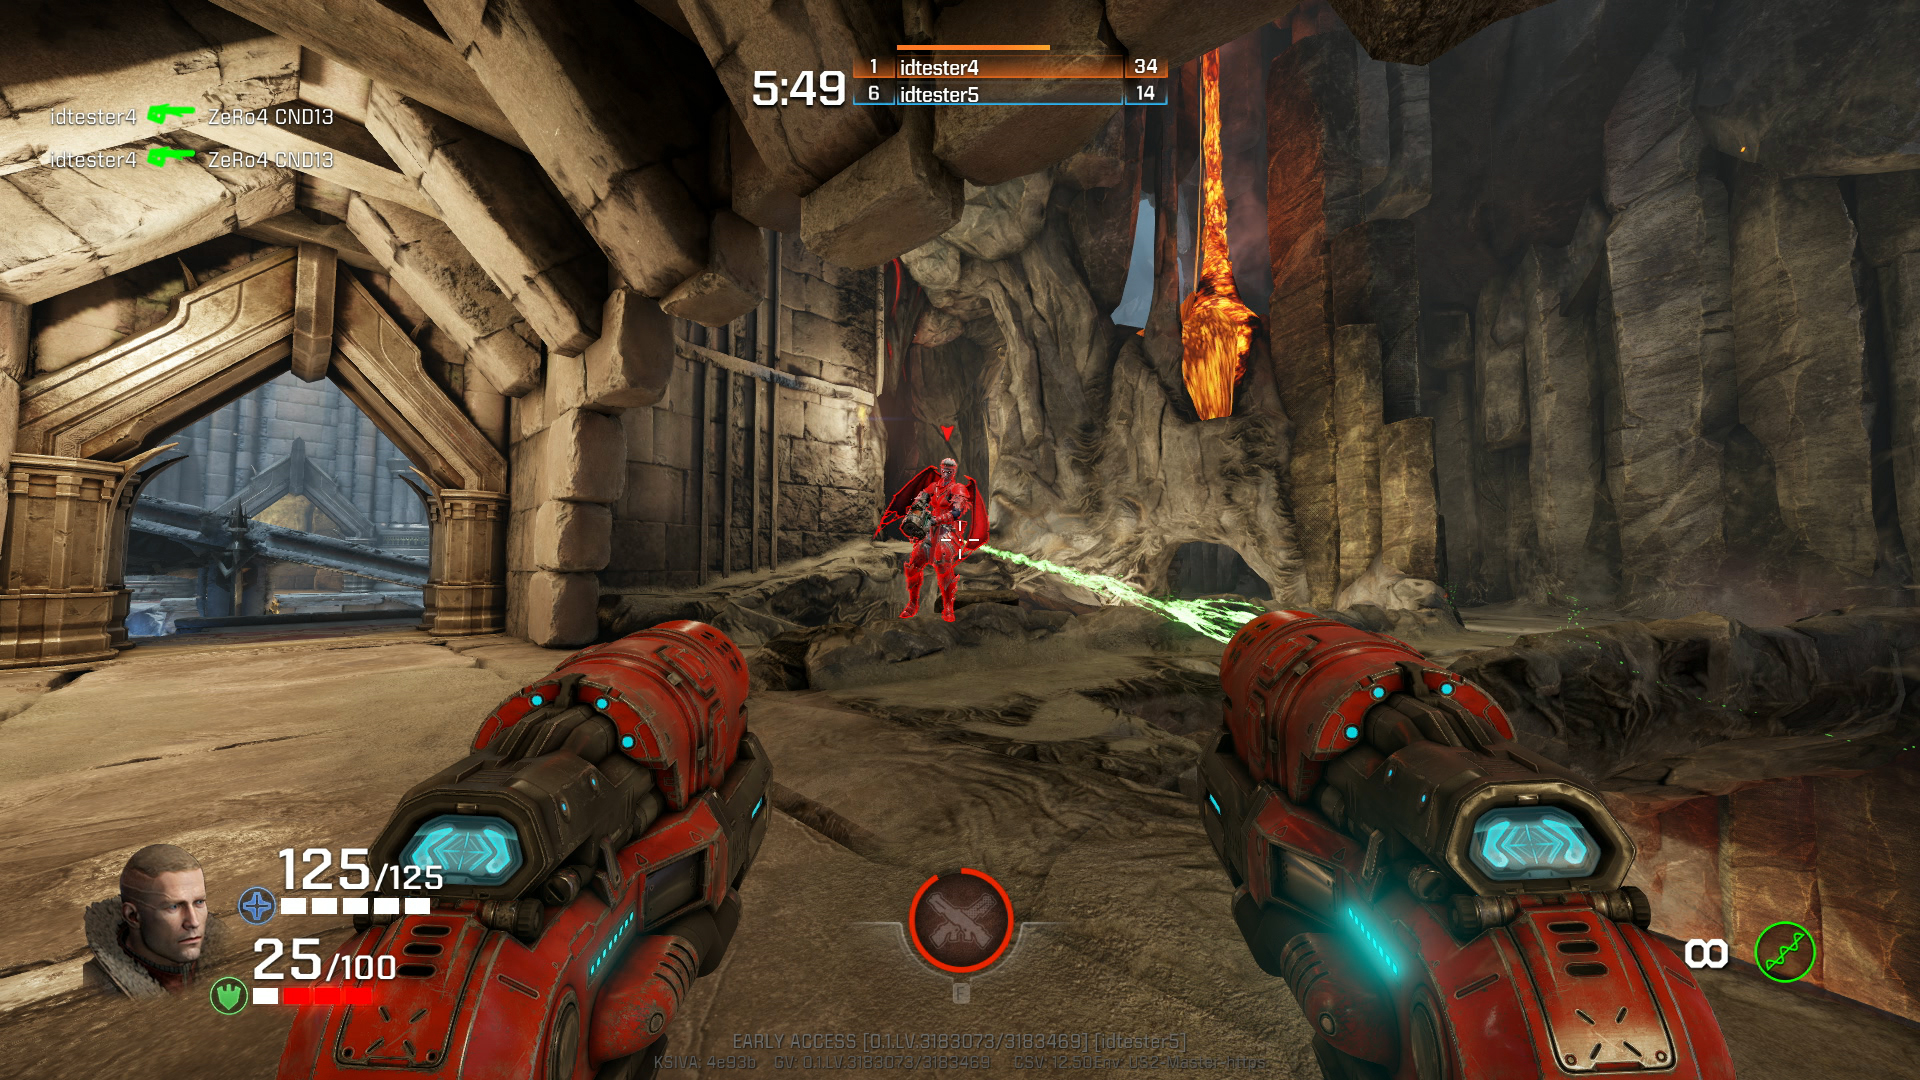 Quake Champions is getting new game modes, including capture the